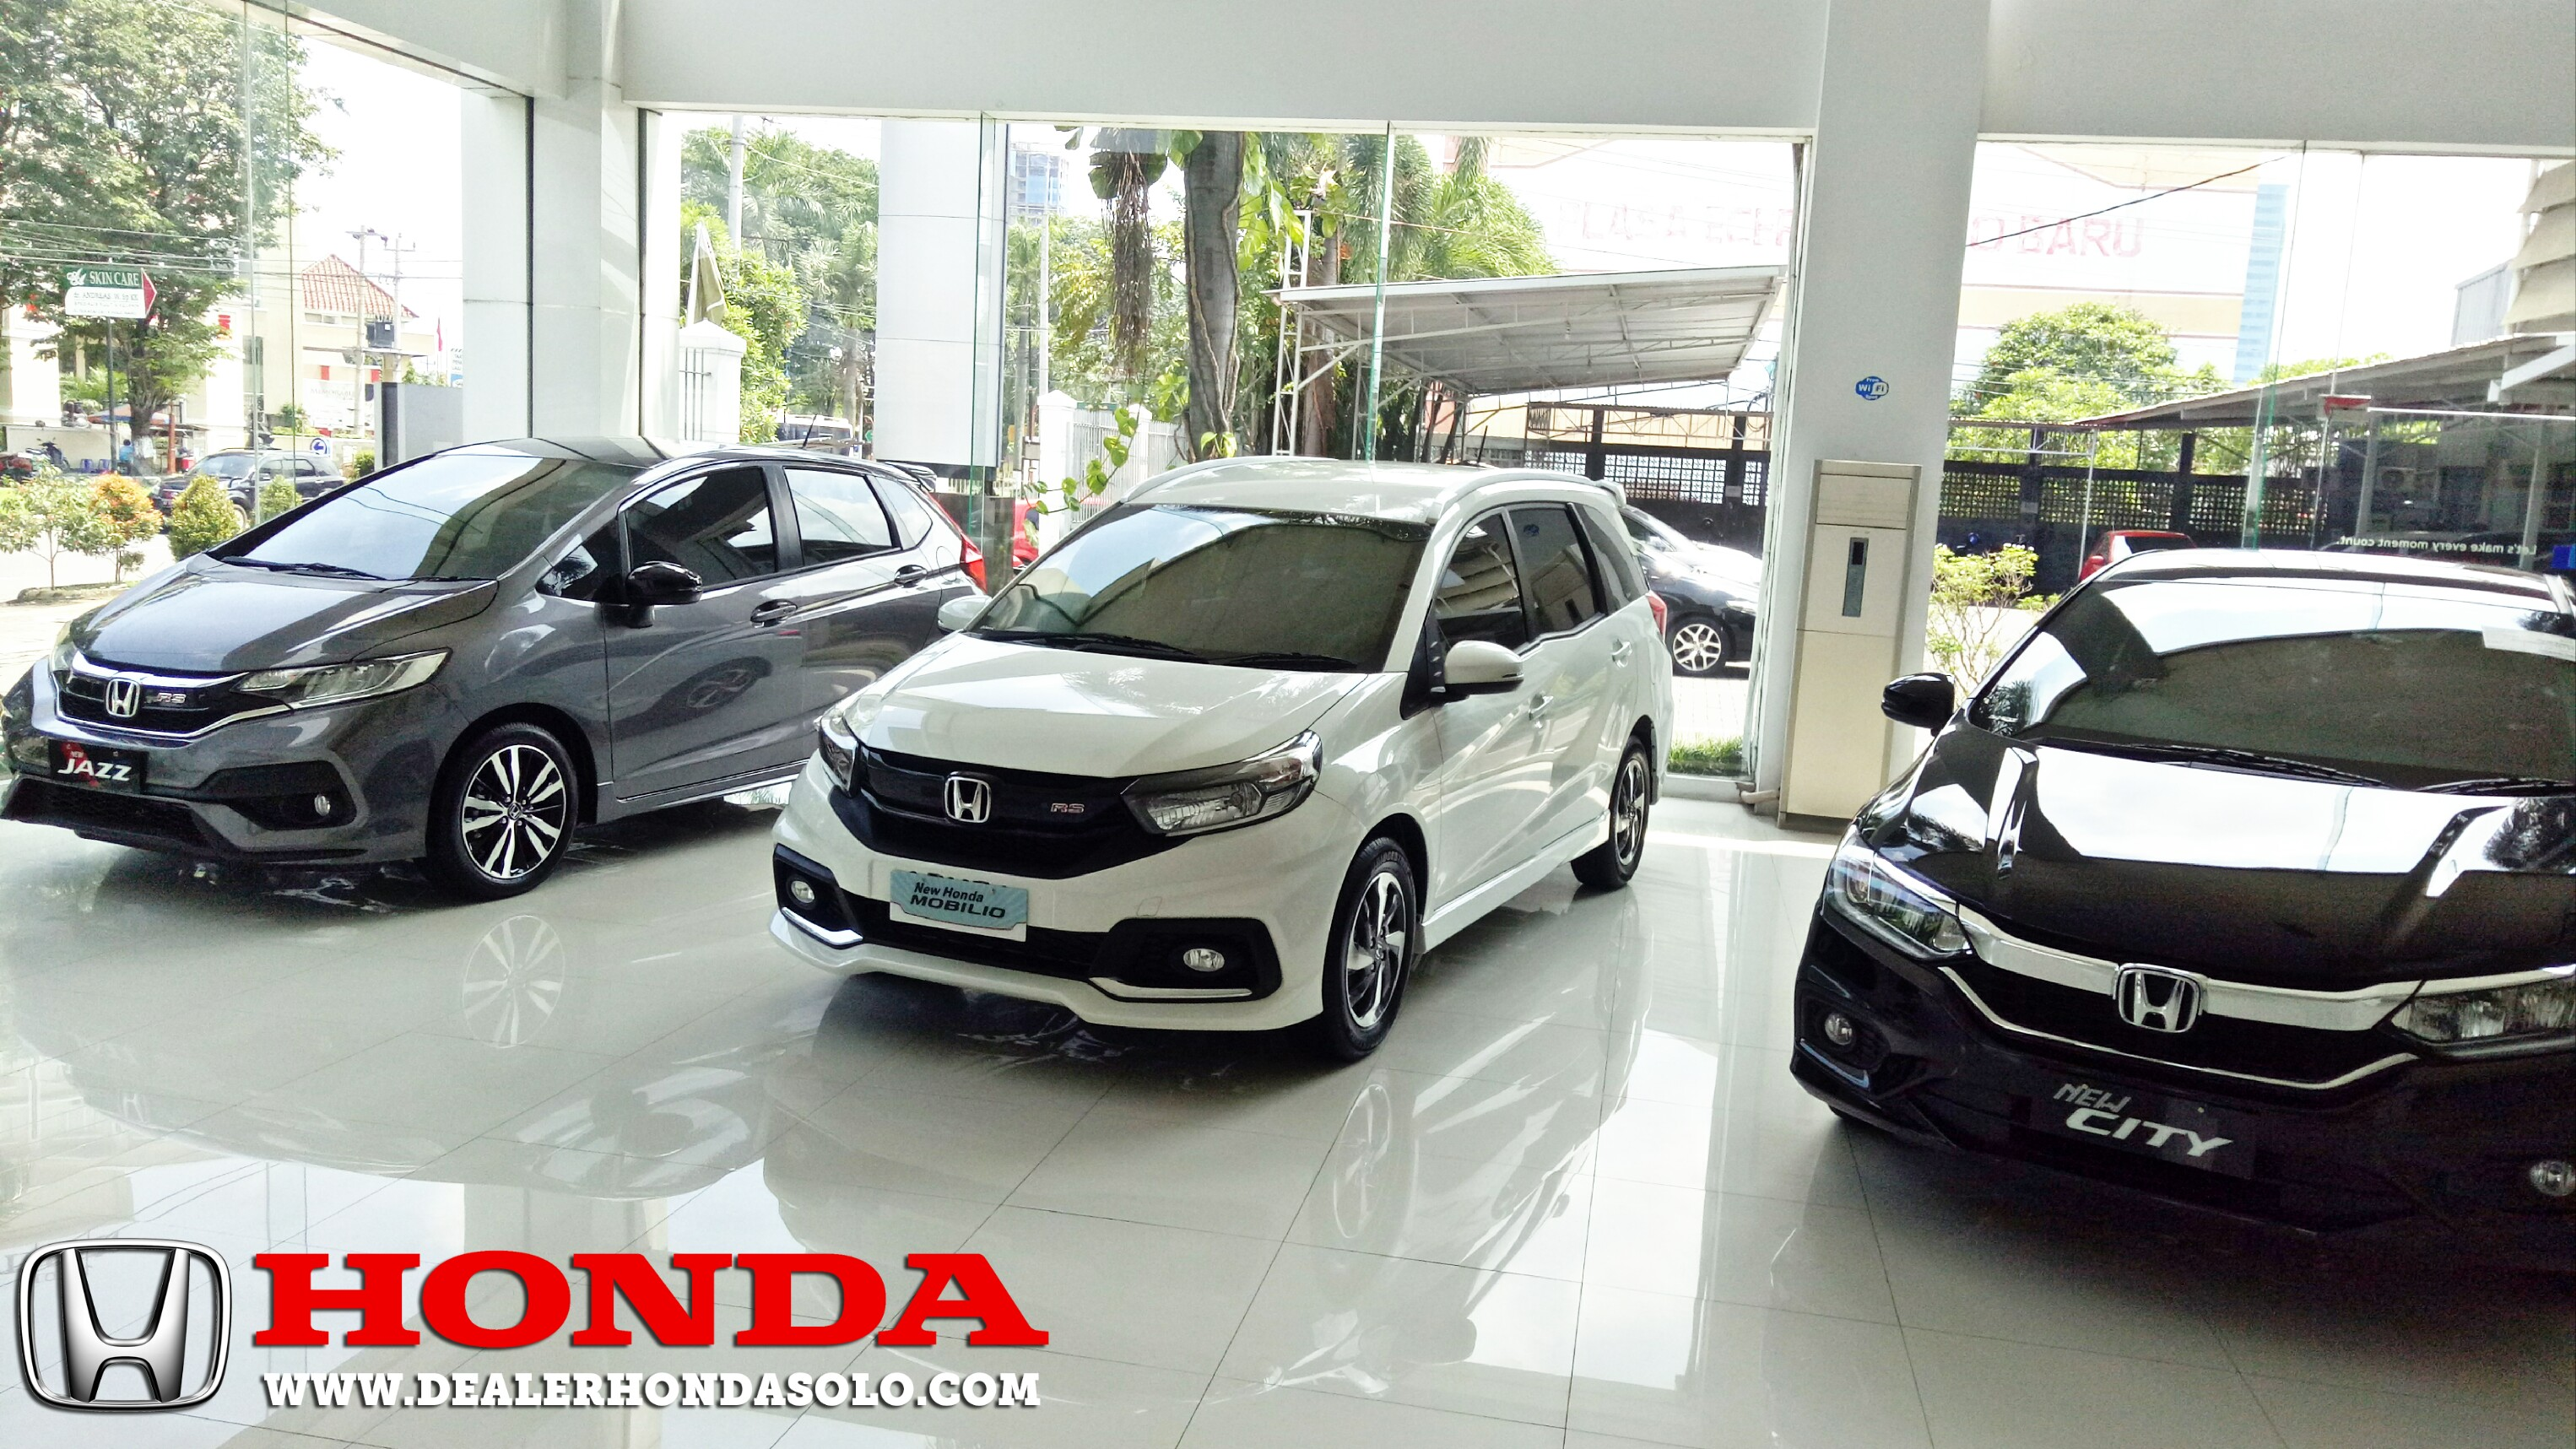 Harga mobil terbaru dealer honda wonogiri februari 2018 for Honda dealerships in ri